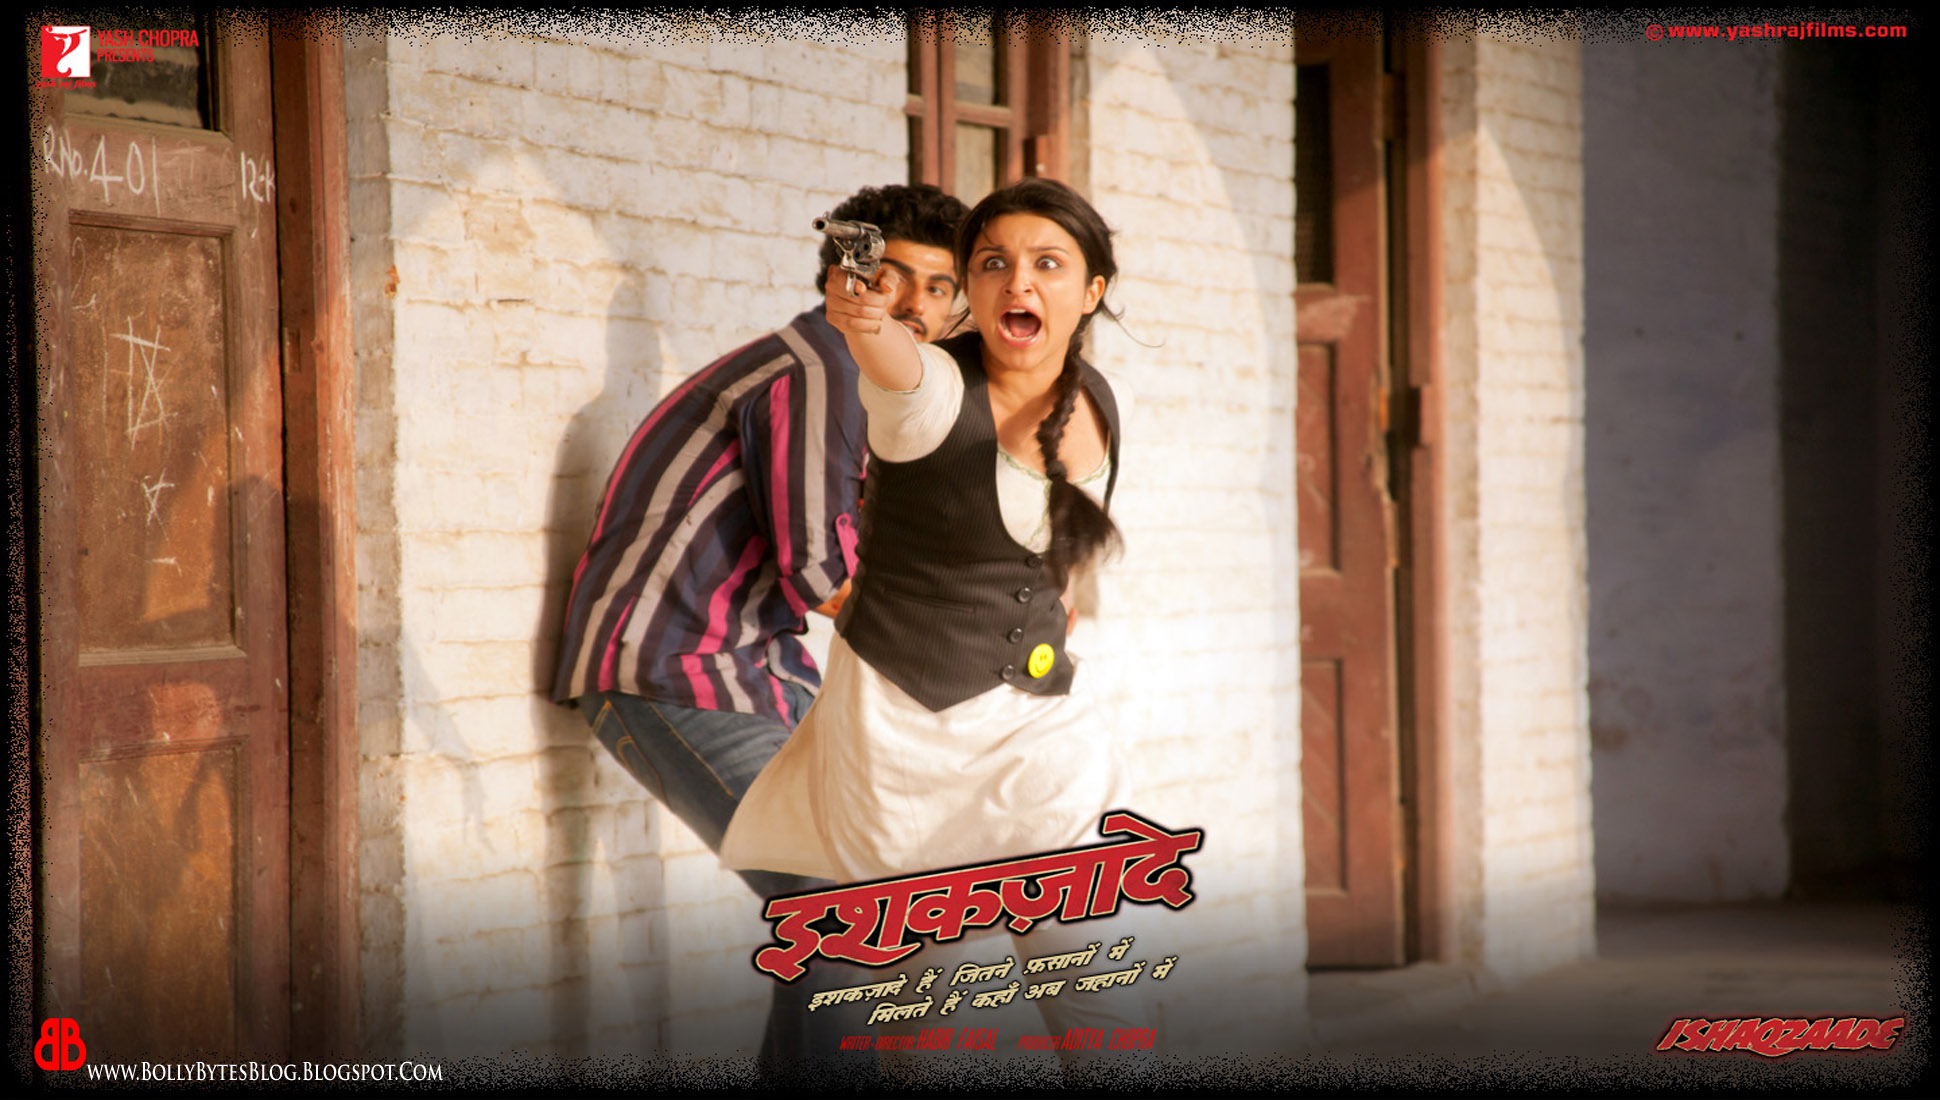 Pictures Of Arjun Kapoor And Parineeti Chopra Wallpapers Rock Cafe